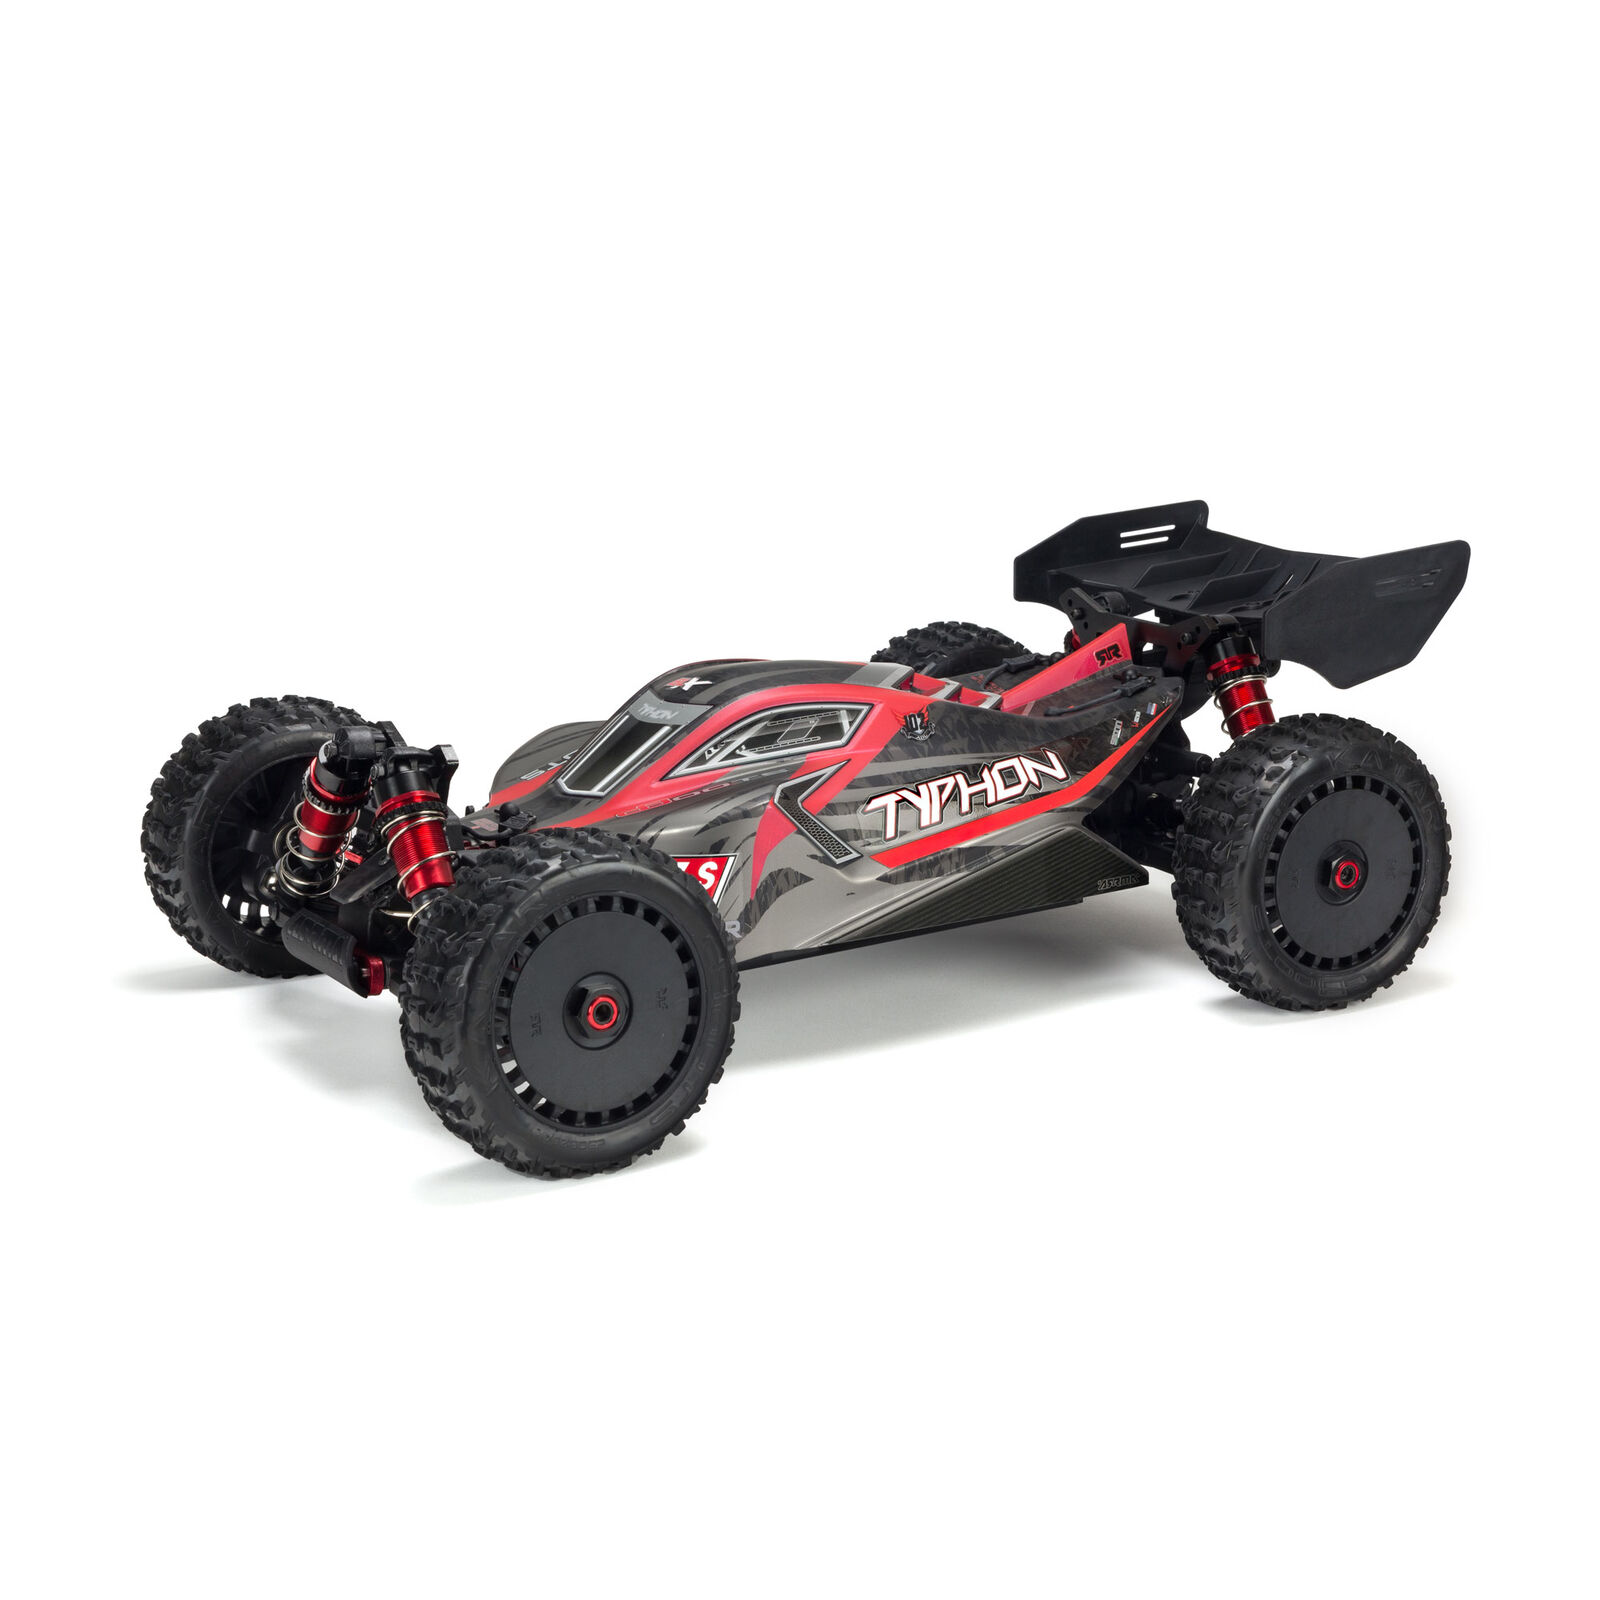 1/8 Painted Body with Decals, Black/Red: TYPHON 6S